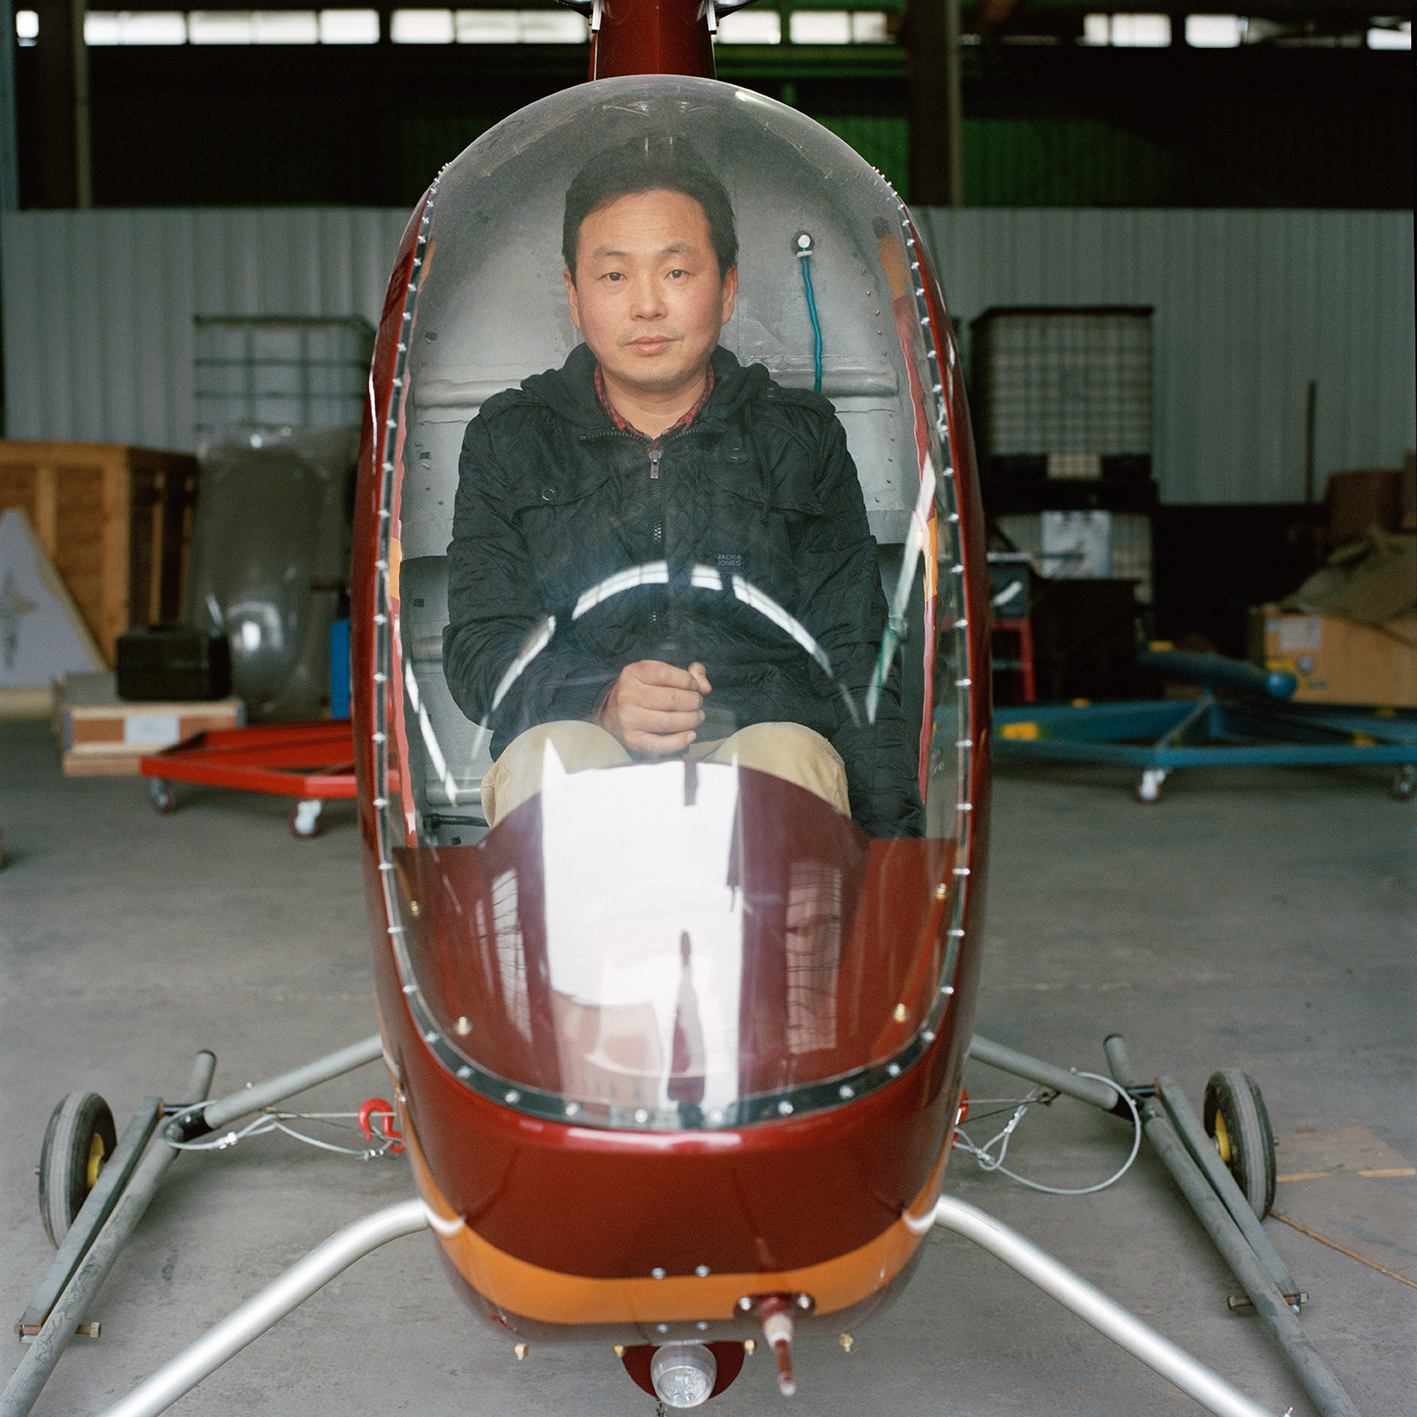 xiaoxiao-xu-aeronautics-in-the-backyards-2015-photography-of-china-10.jpg